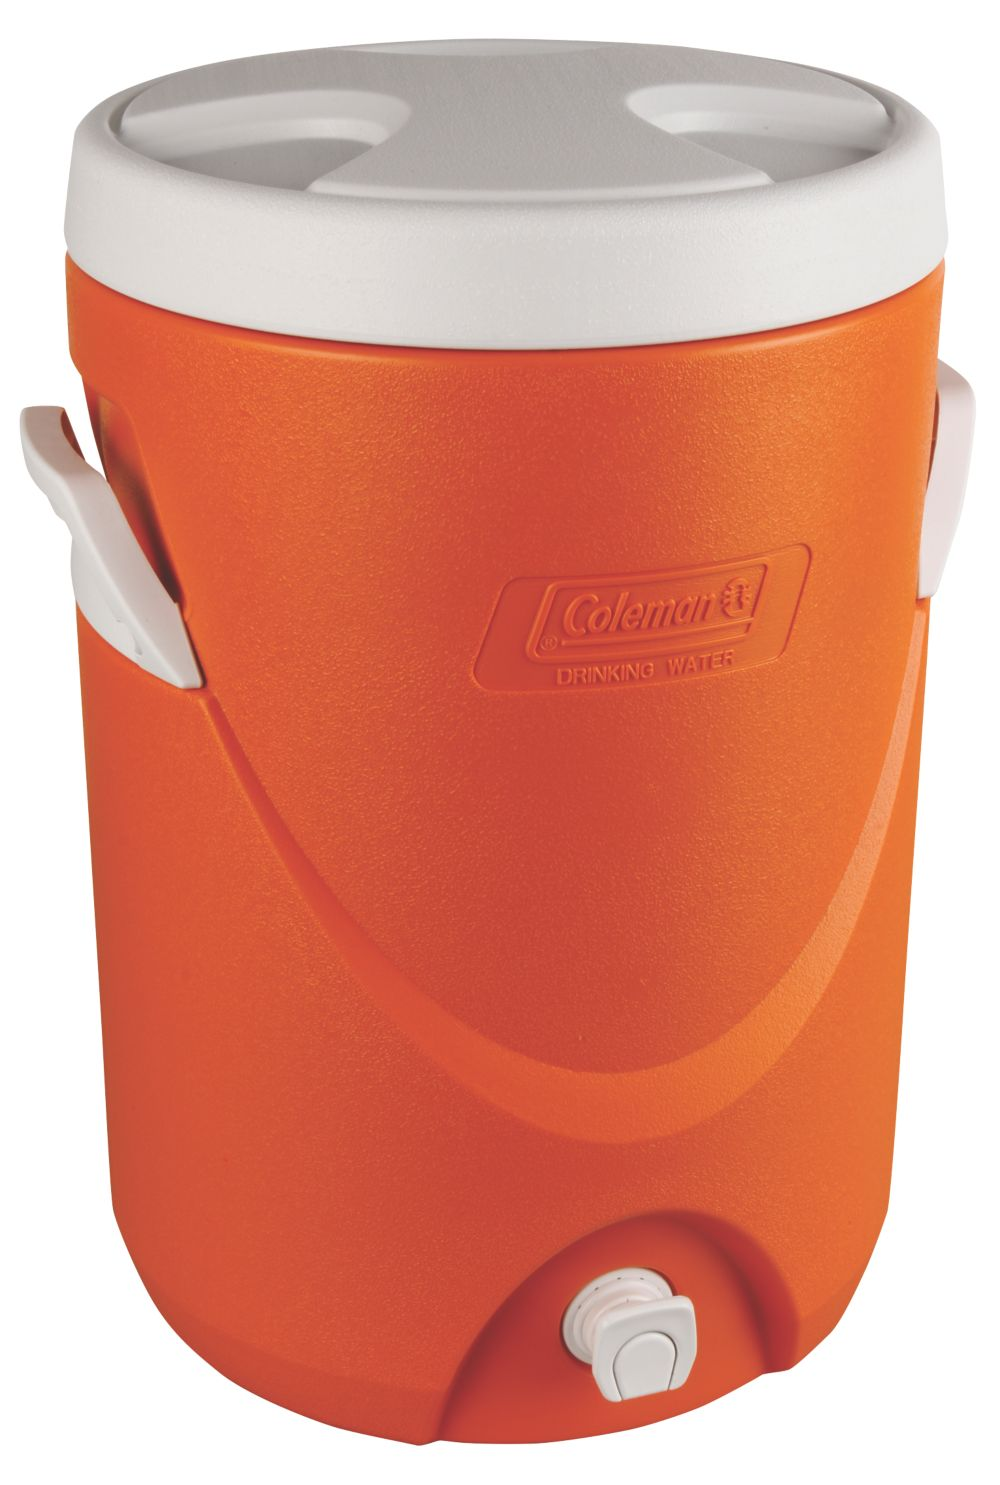 5 Gallon Beverage Cooler - Orange